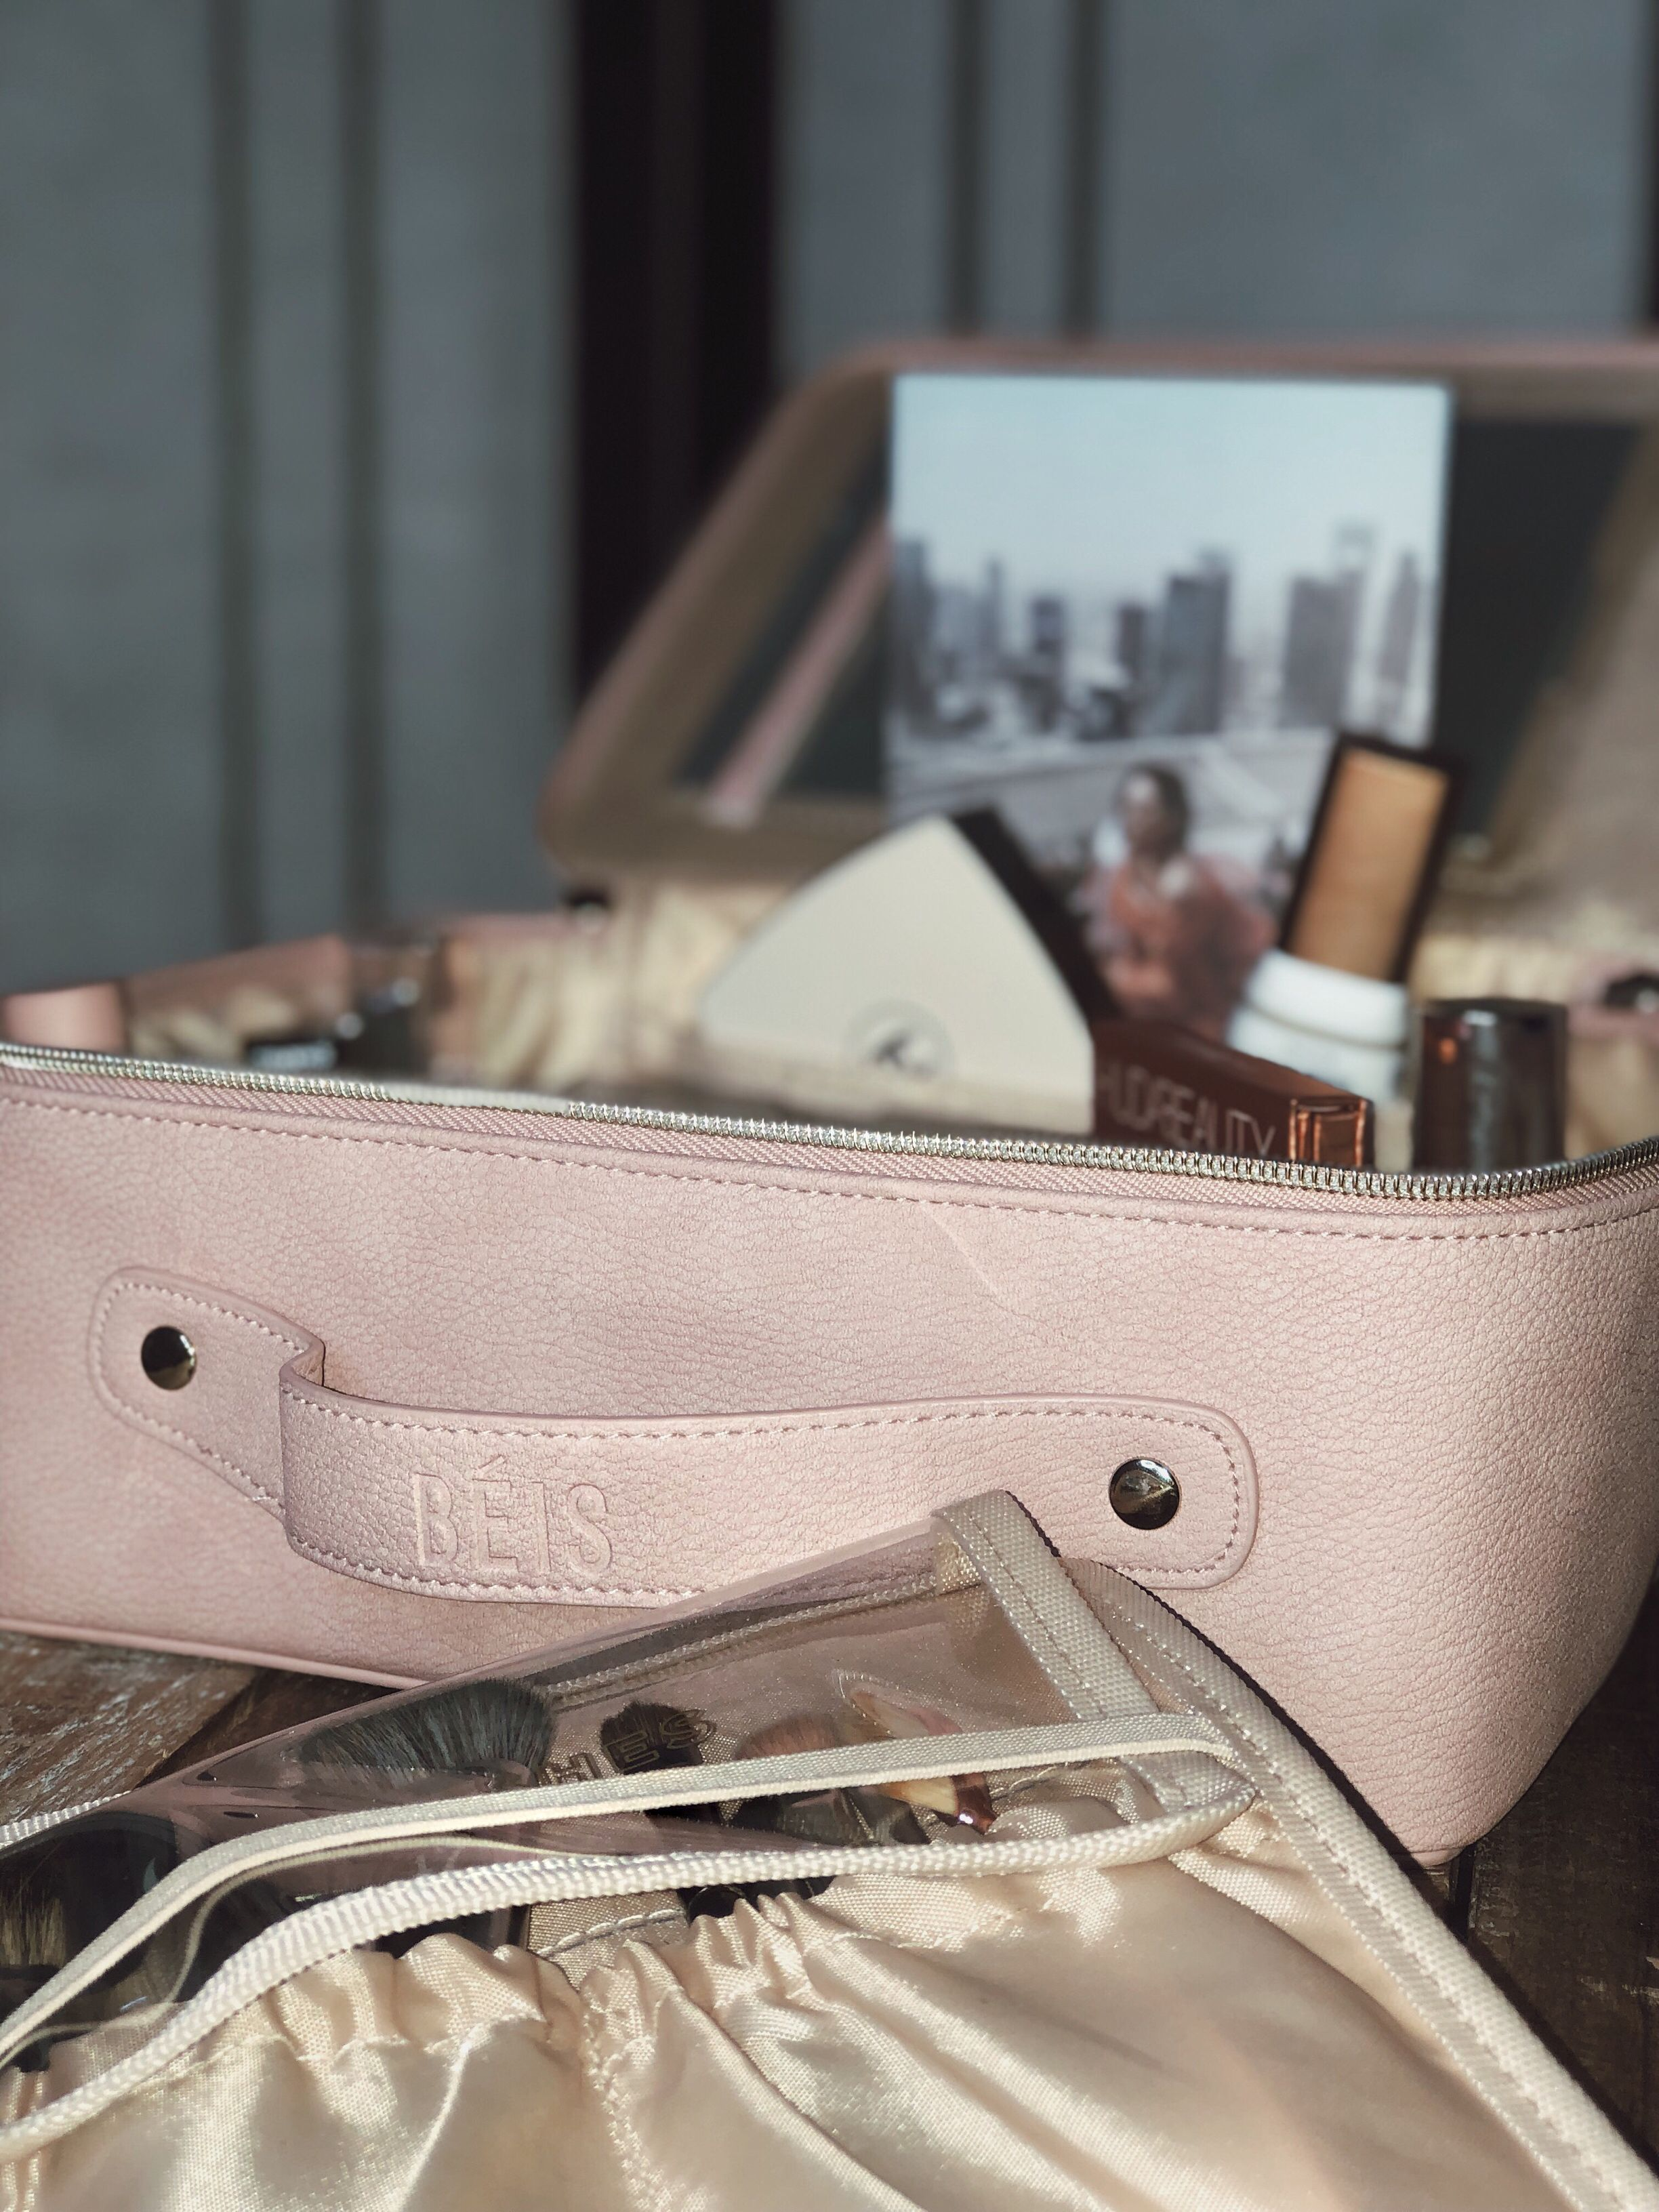 Shay Mitchell Makeup Bag, Béis Travel Cosmetic Bag in Rose